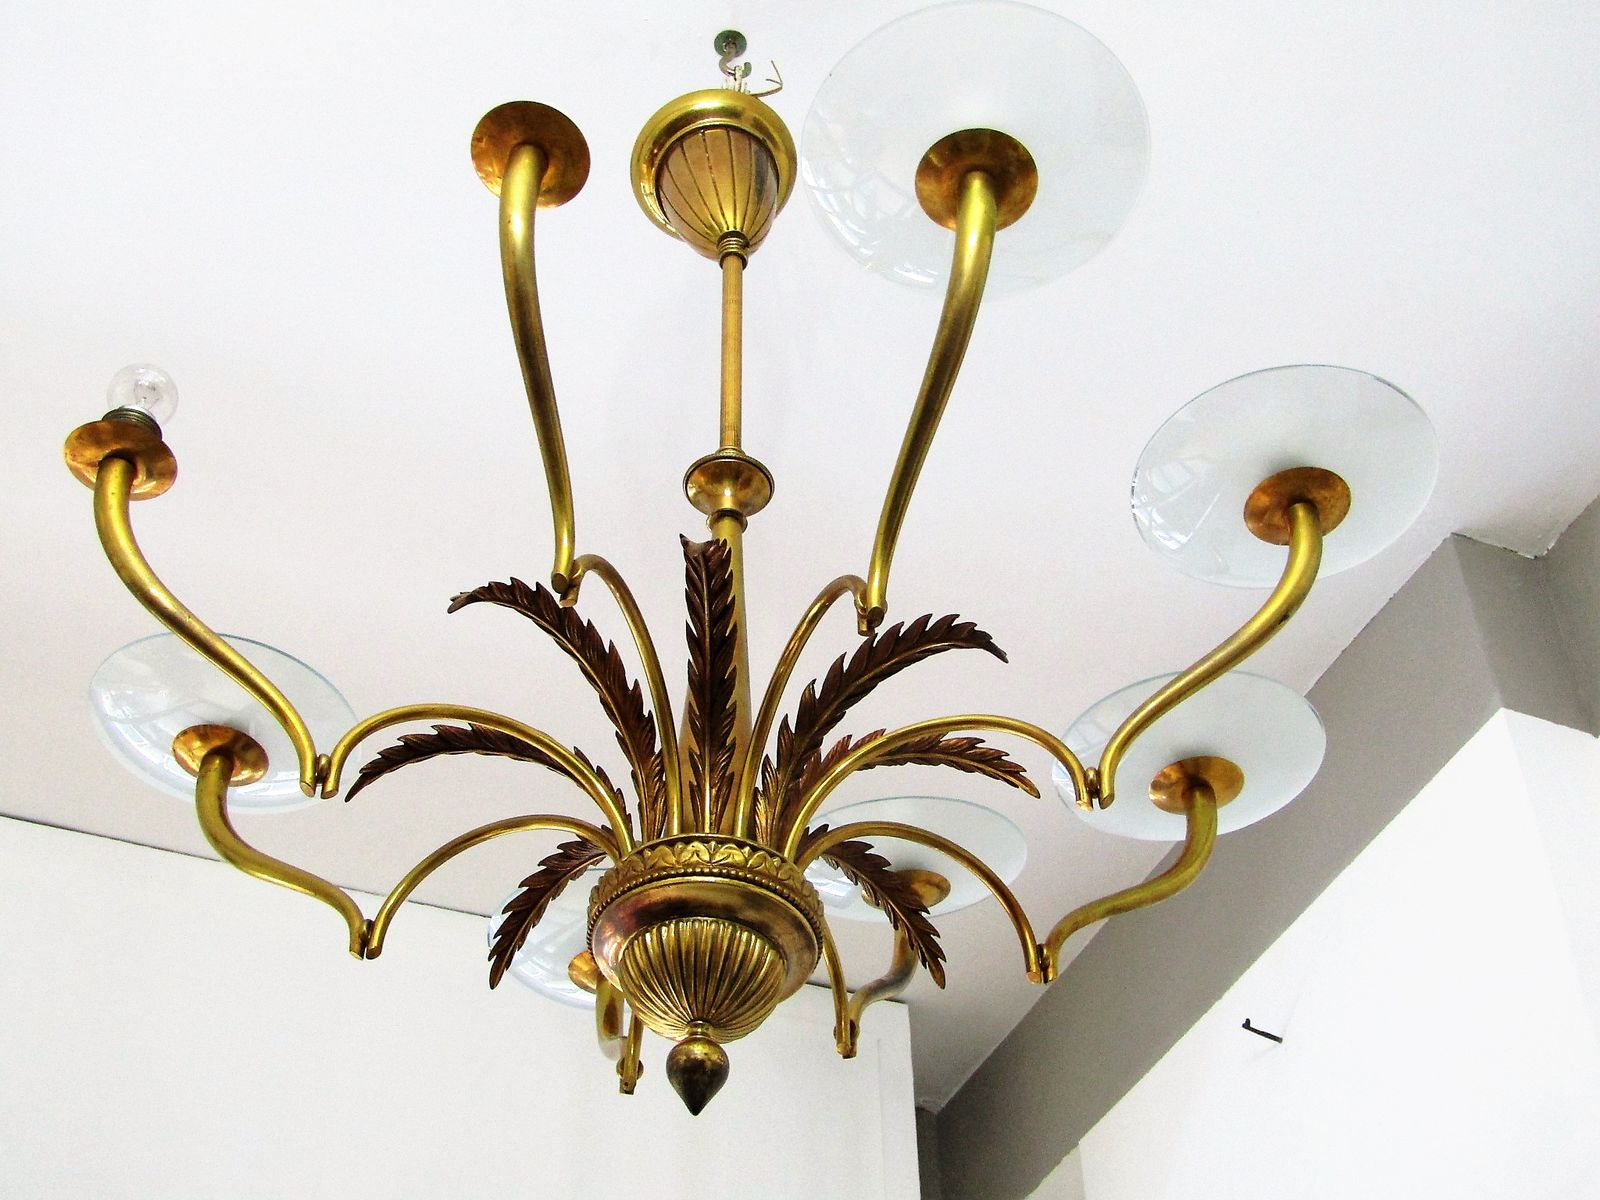 Italian glass disks chandelier 1930s for sale at pamono mozeypictures